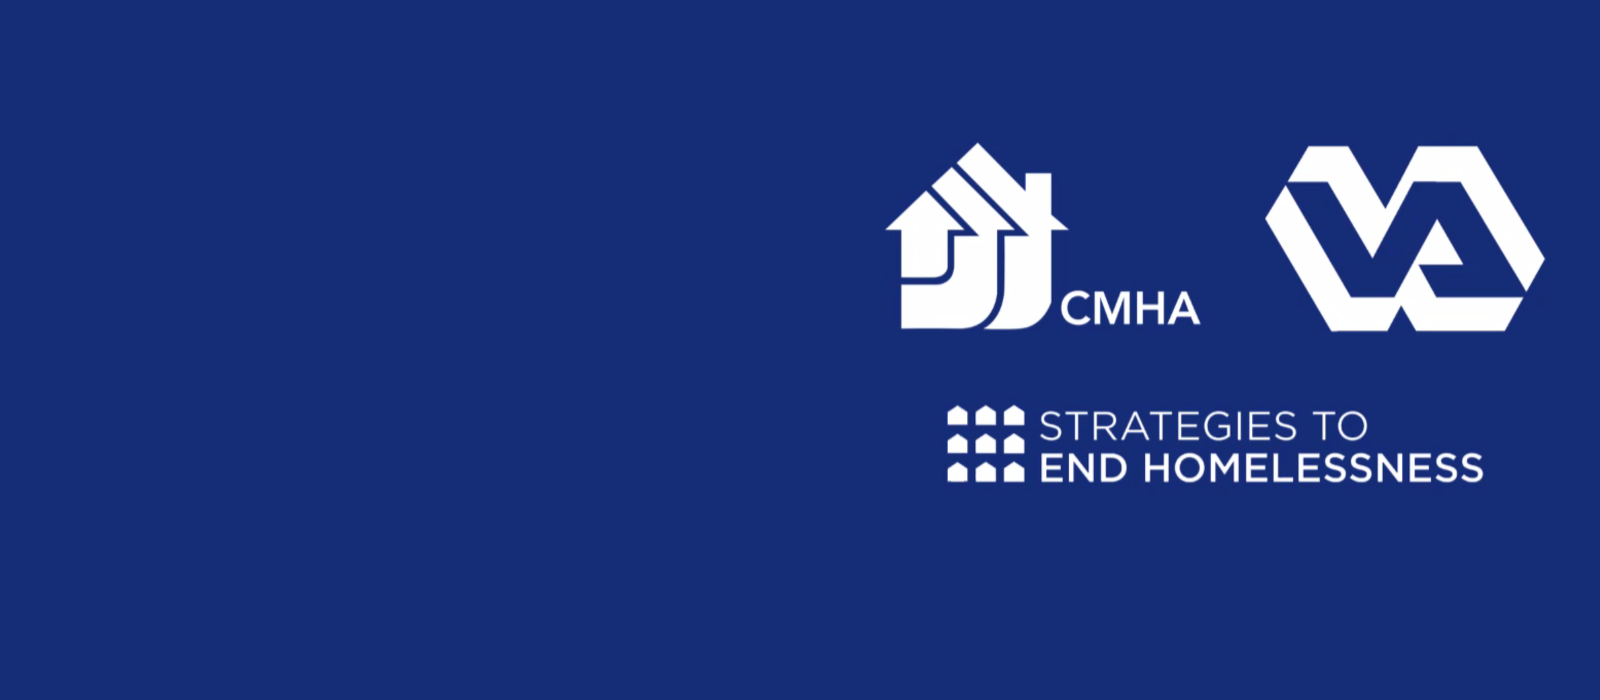 We're housing more families through our partnership with CMHA and the VA. Click to learn more.